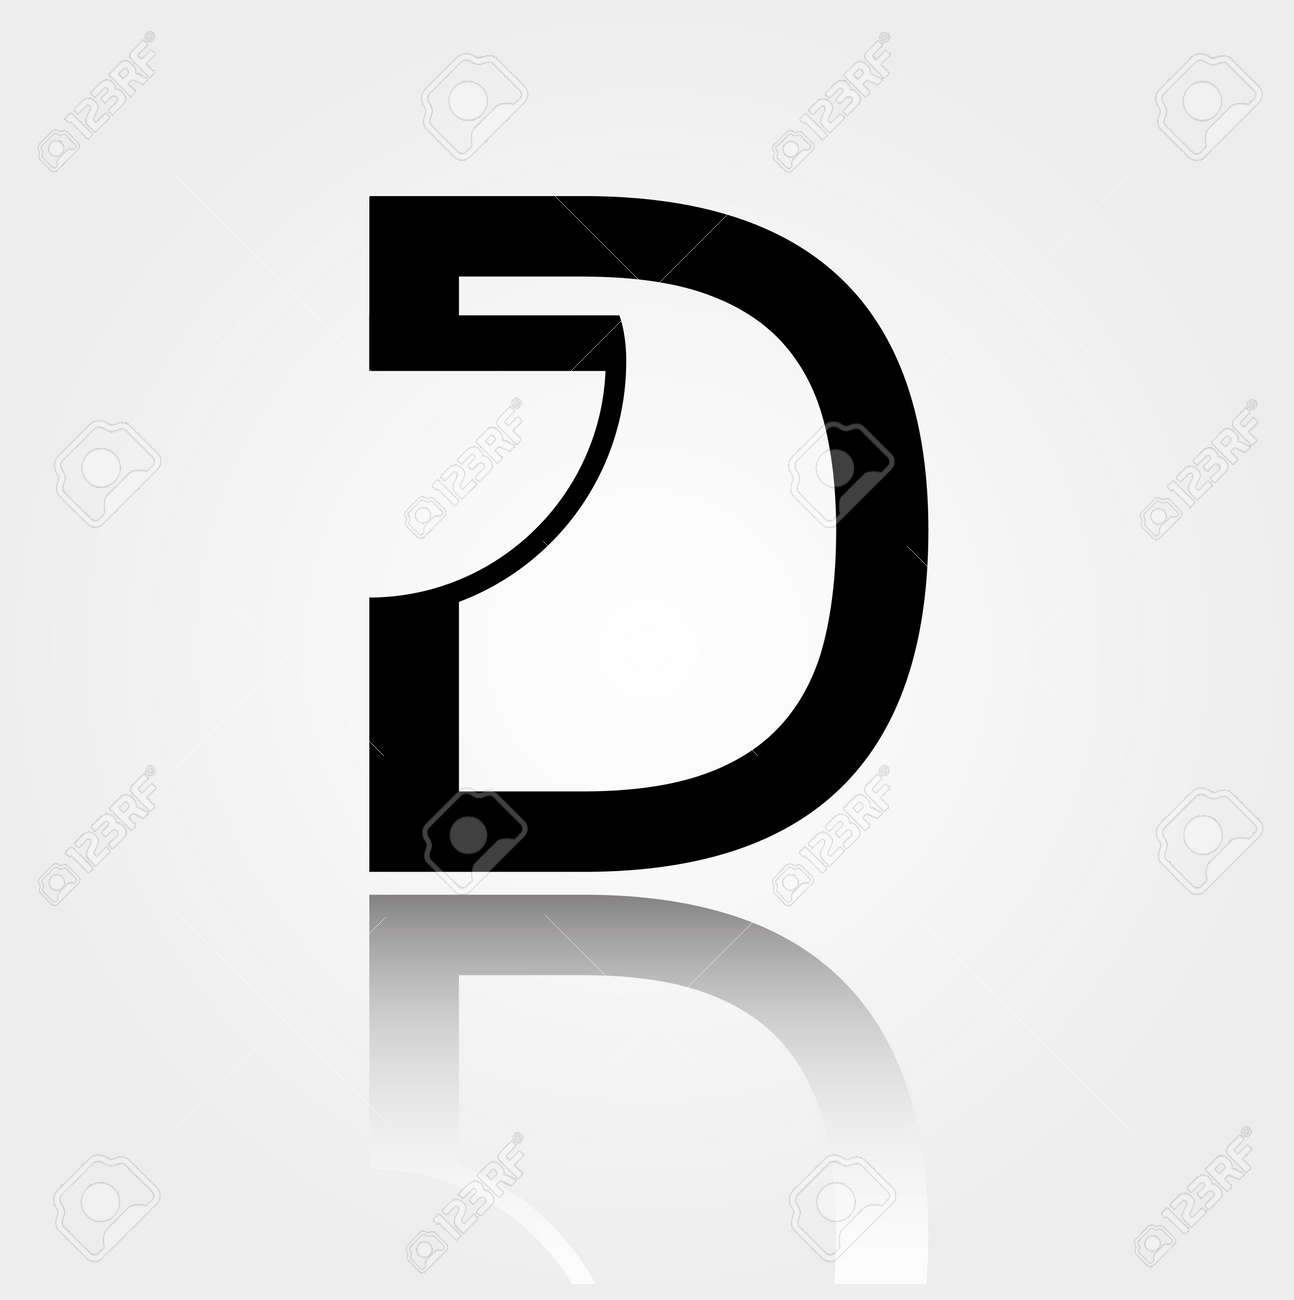 D For Design Icon Interior Or Architecture Showing Space With Door Plan Stock